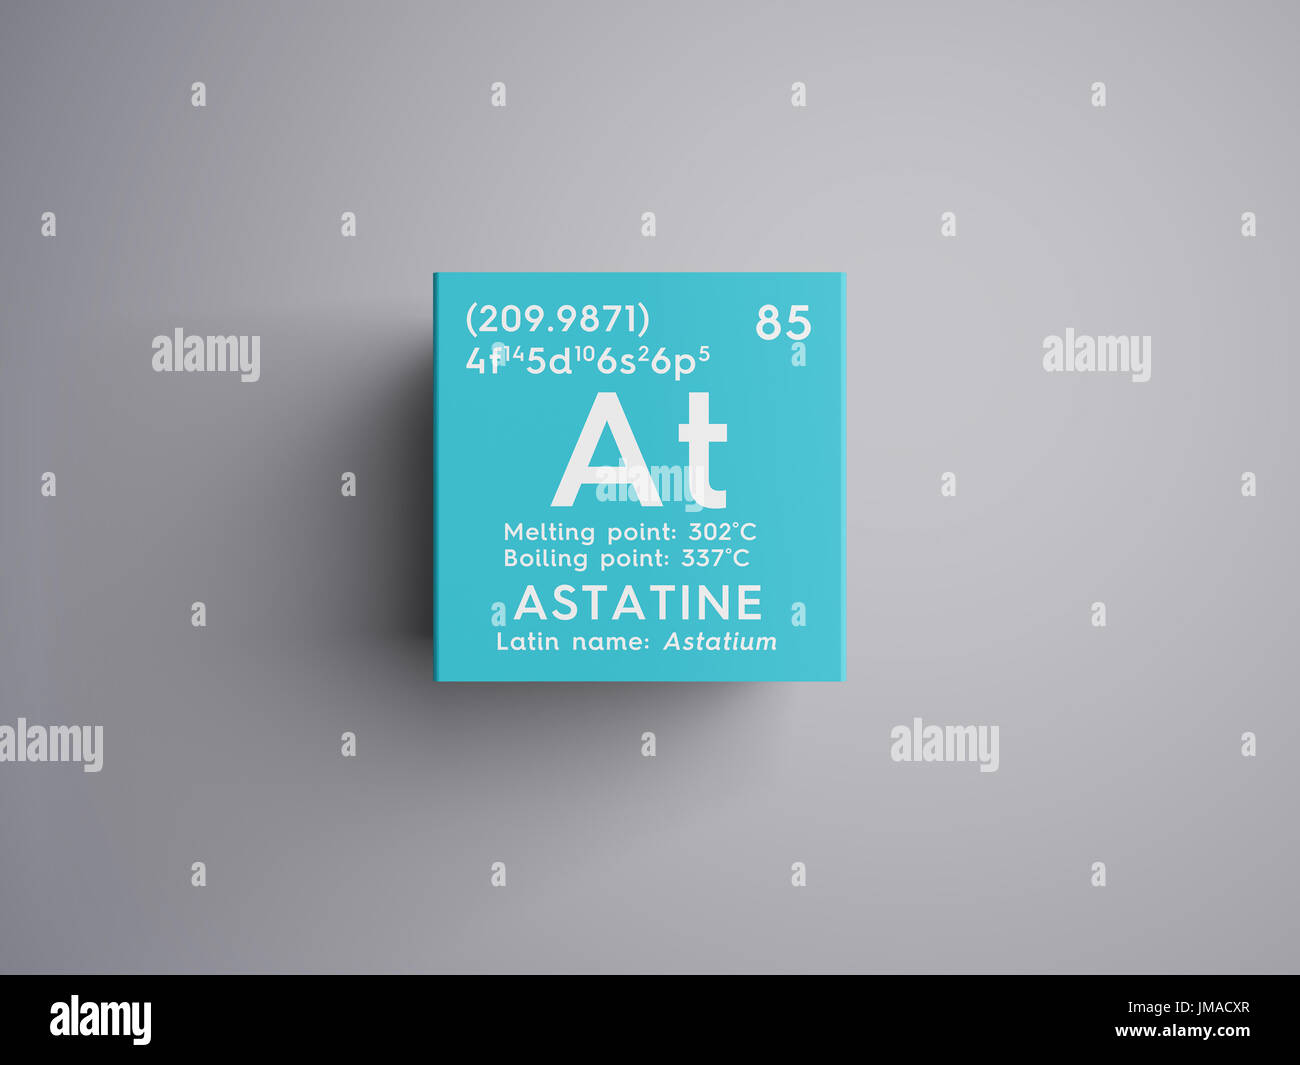 Astatine astatium halogens chemical element of mendeleevs stock astatine astatium halogens chemical element of mendeleevs periodic table astatine in square cube creative concept urtaz Image collections